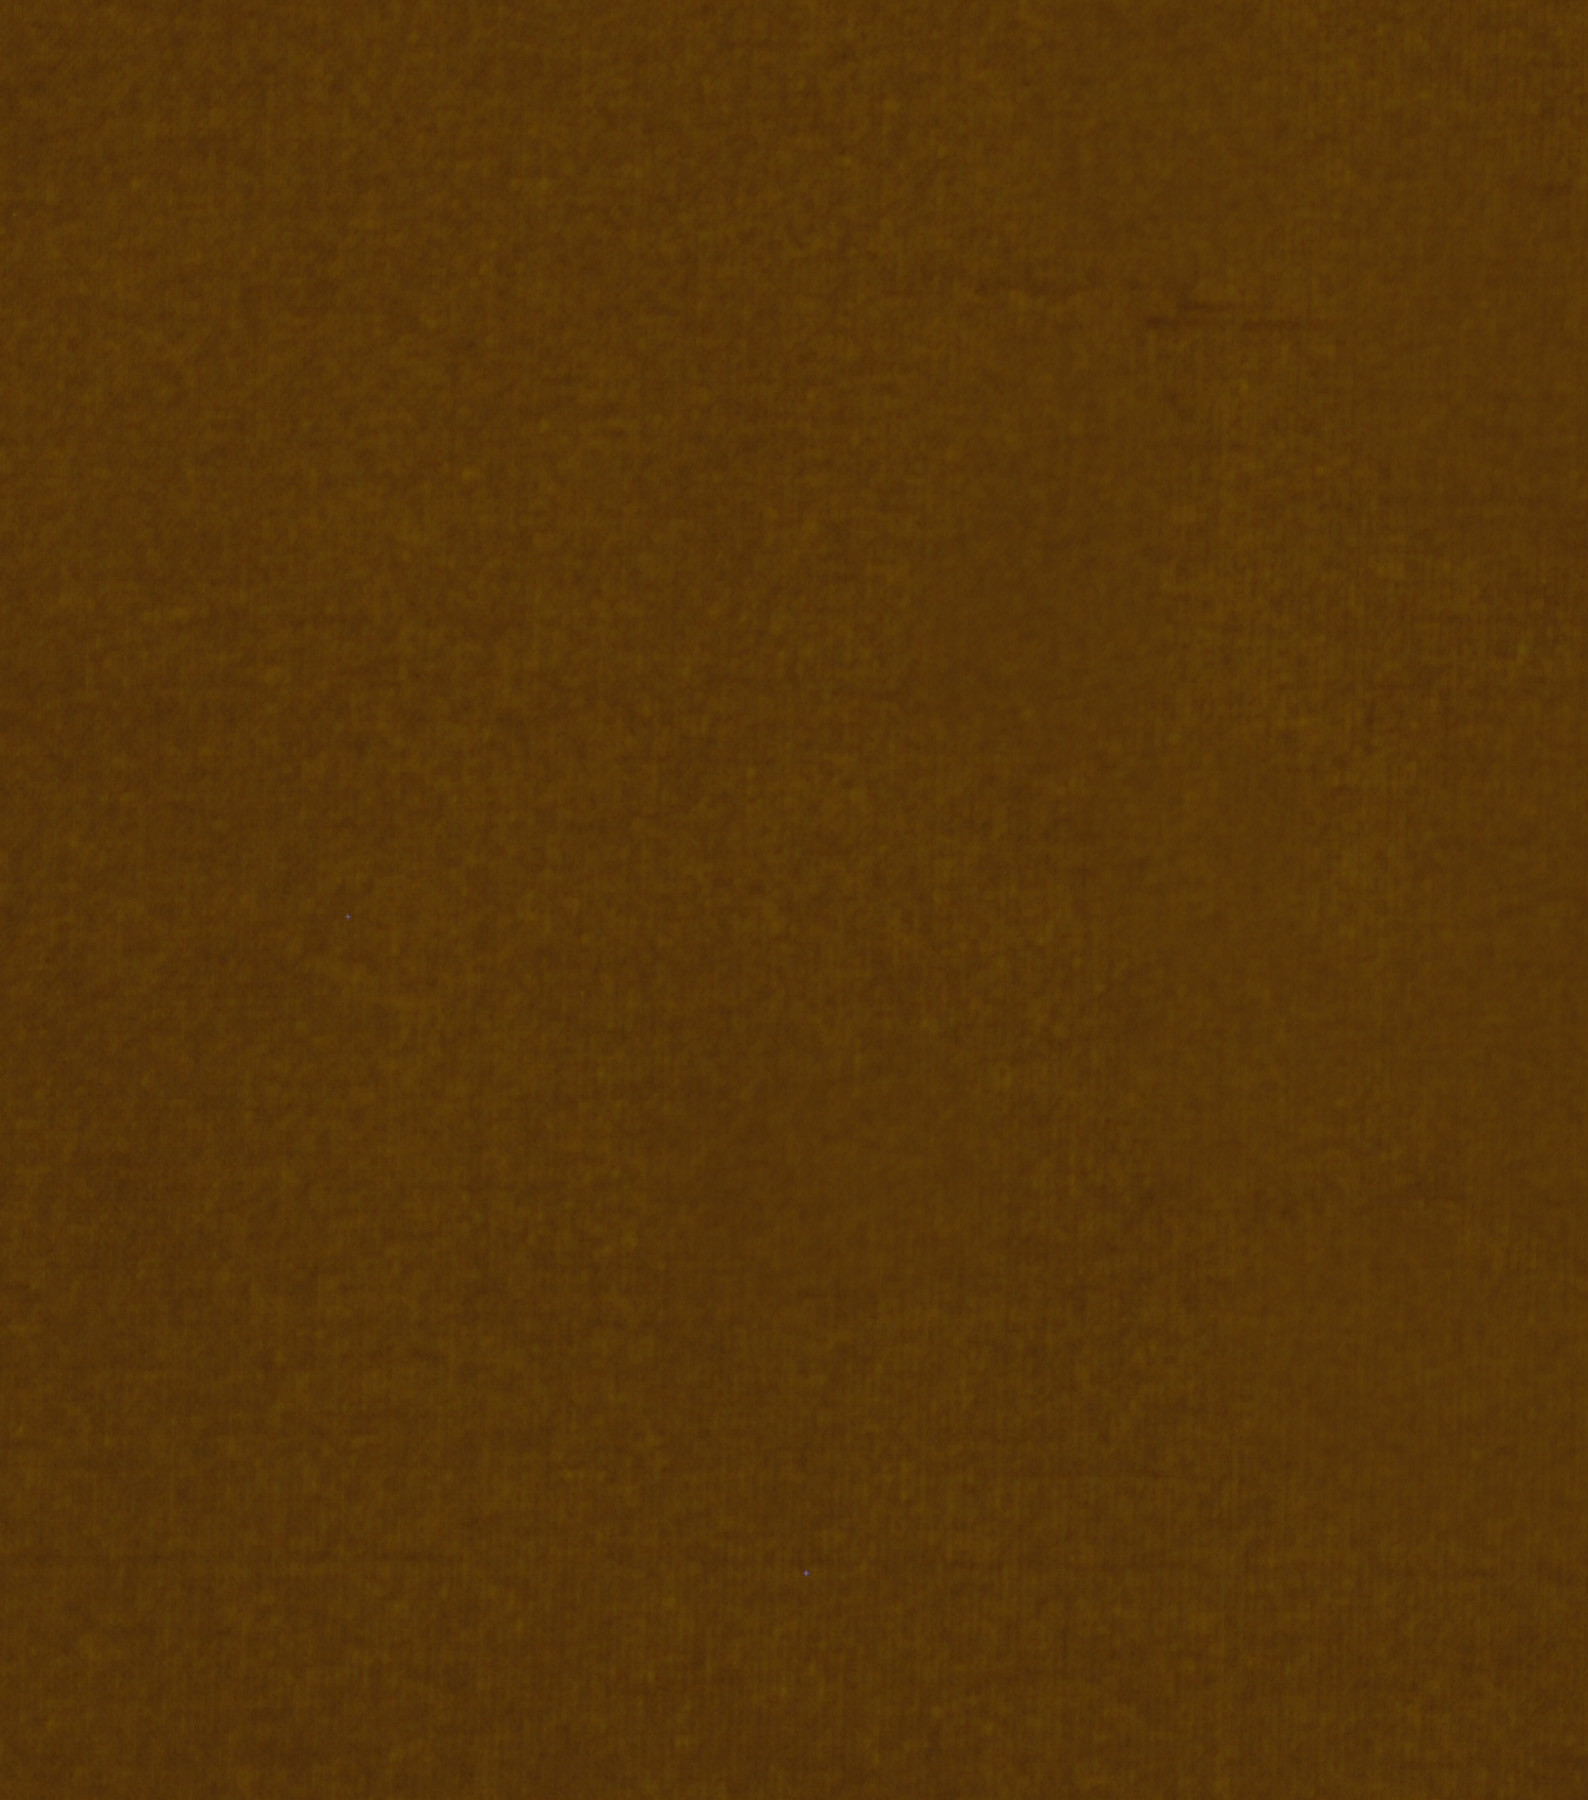 Home Decor 8\u0022x8\u0022 Fabric Swatch-Solid Fabric Signature Series Kalin Sienna